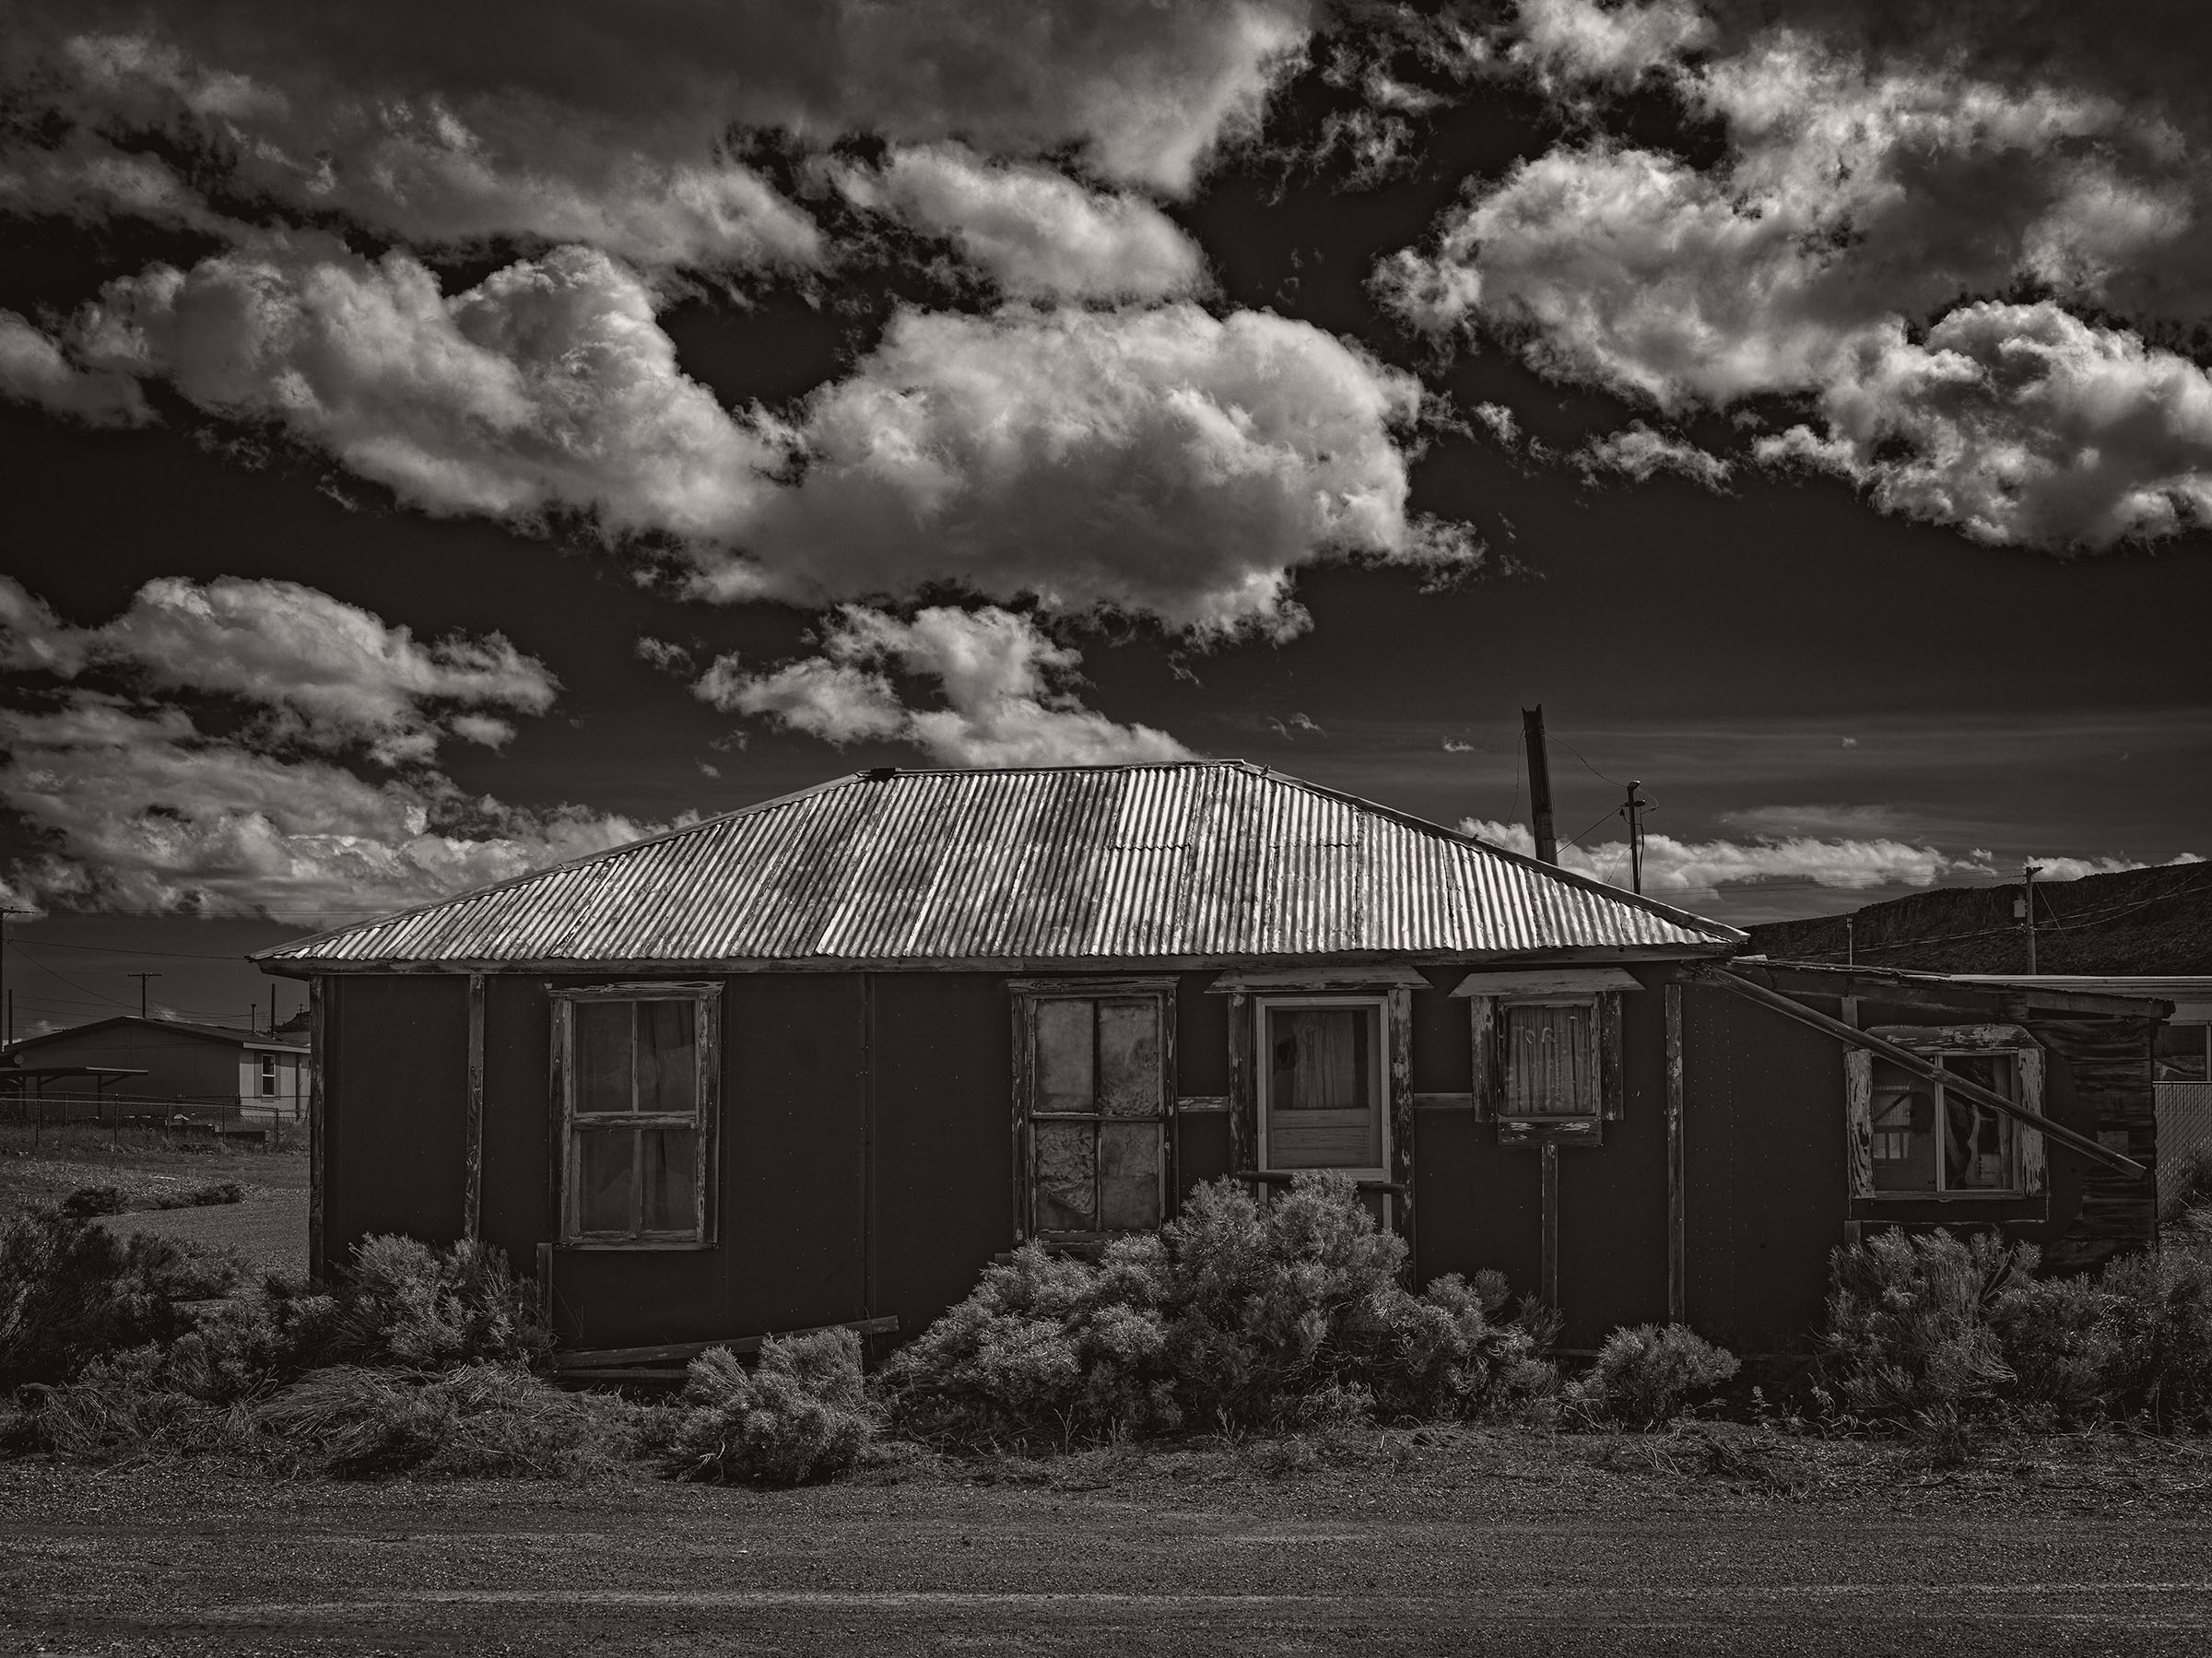 Town gone Bust abandoned House Photogenic Landscape Photography by award winning Fine art Photographer Wick Beavers NYC LA